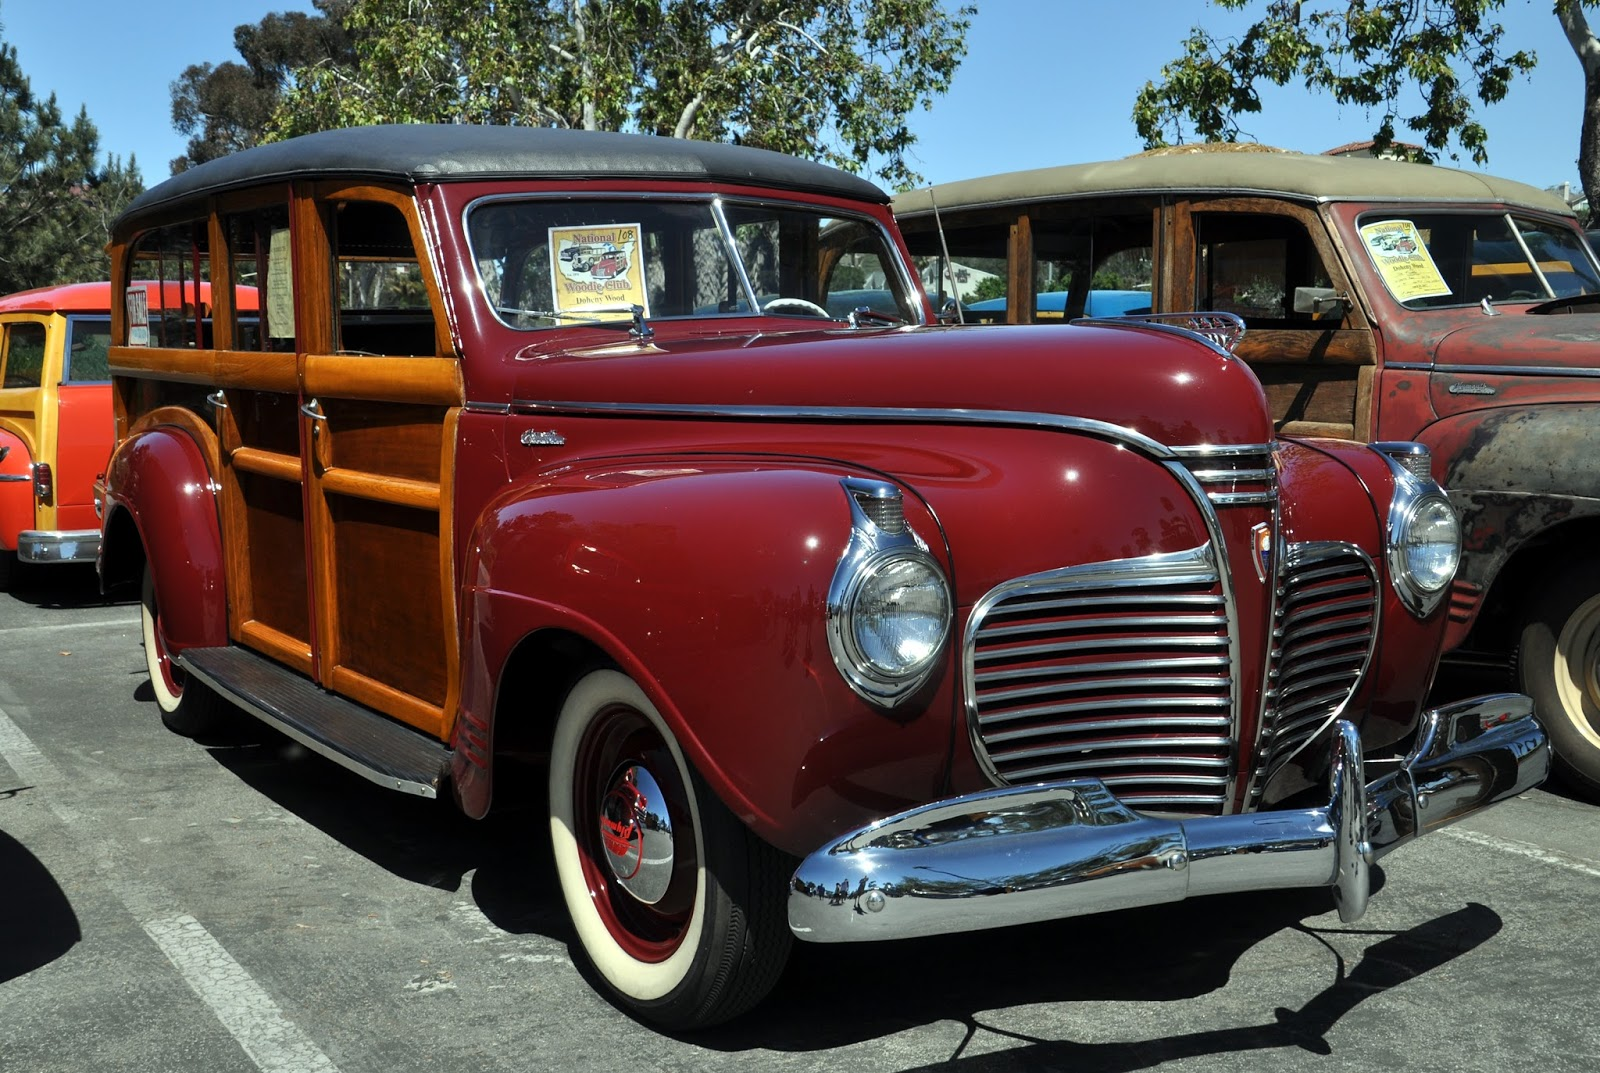 Just A Car Guy 1941 Plymouth Woodies Rough And Restored Compared 2 Dr Coupe The Back Of Ones Is Full Seats There Was No Point In Photographing Them